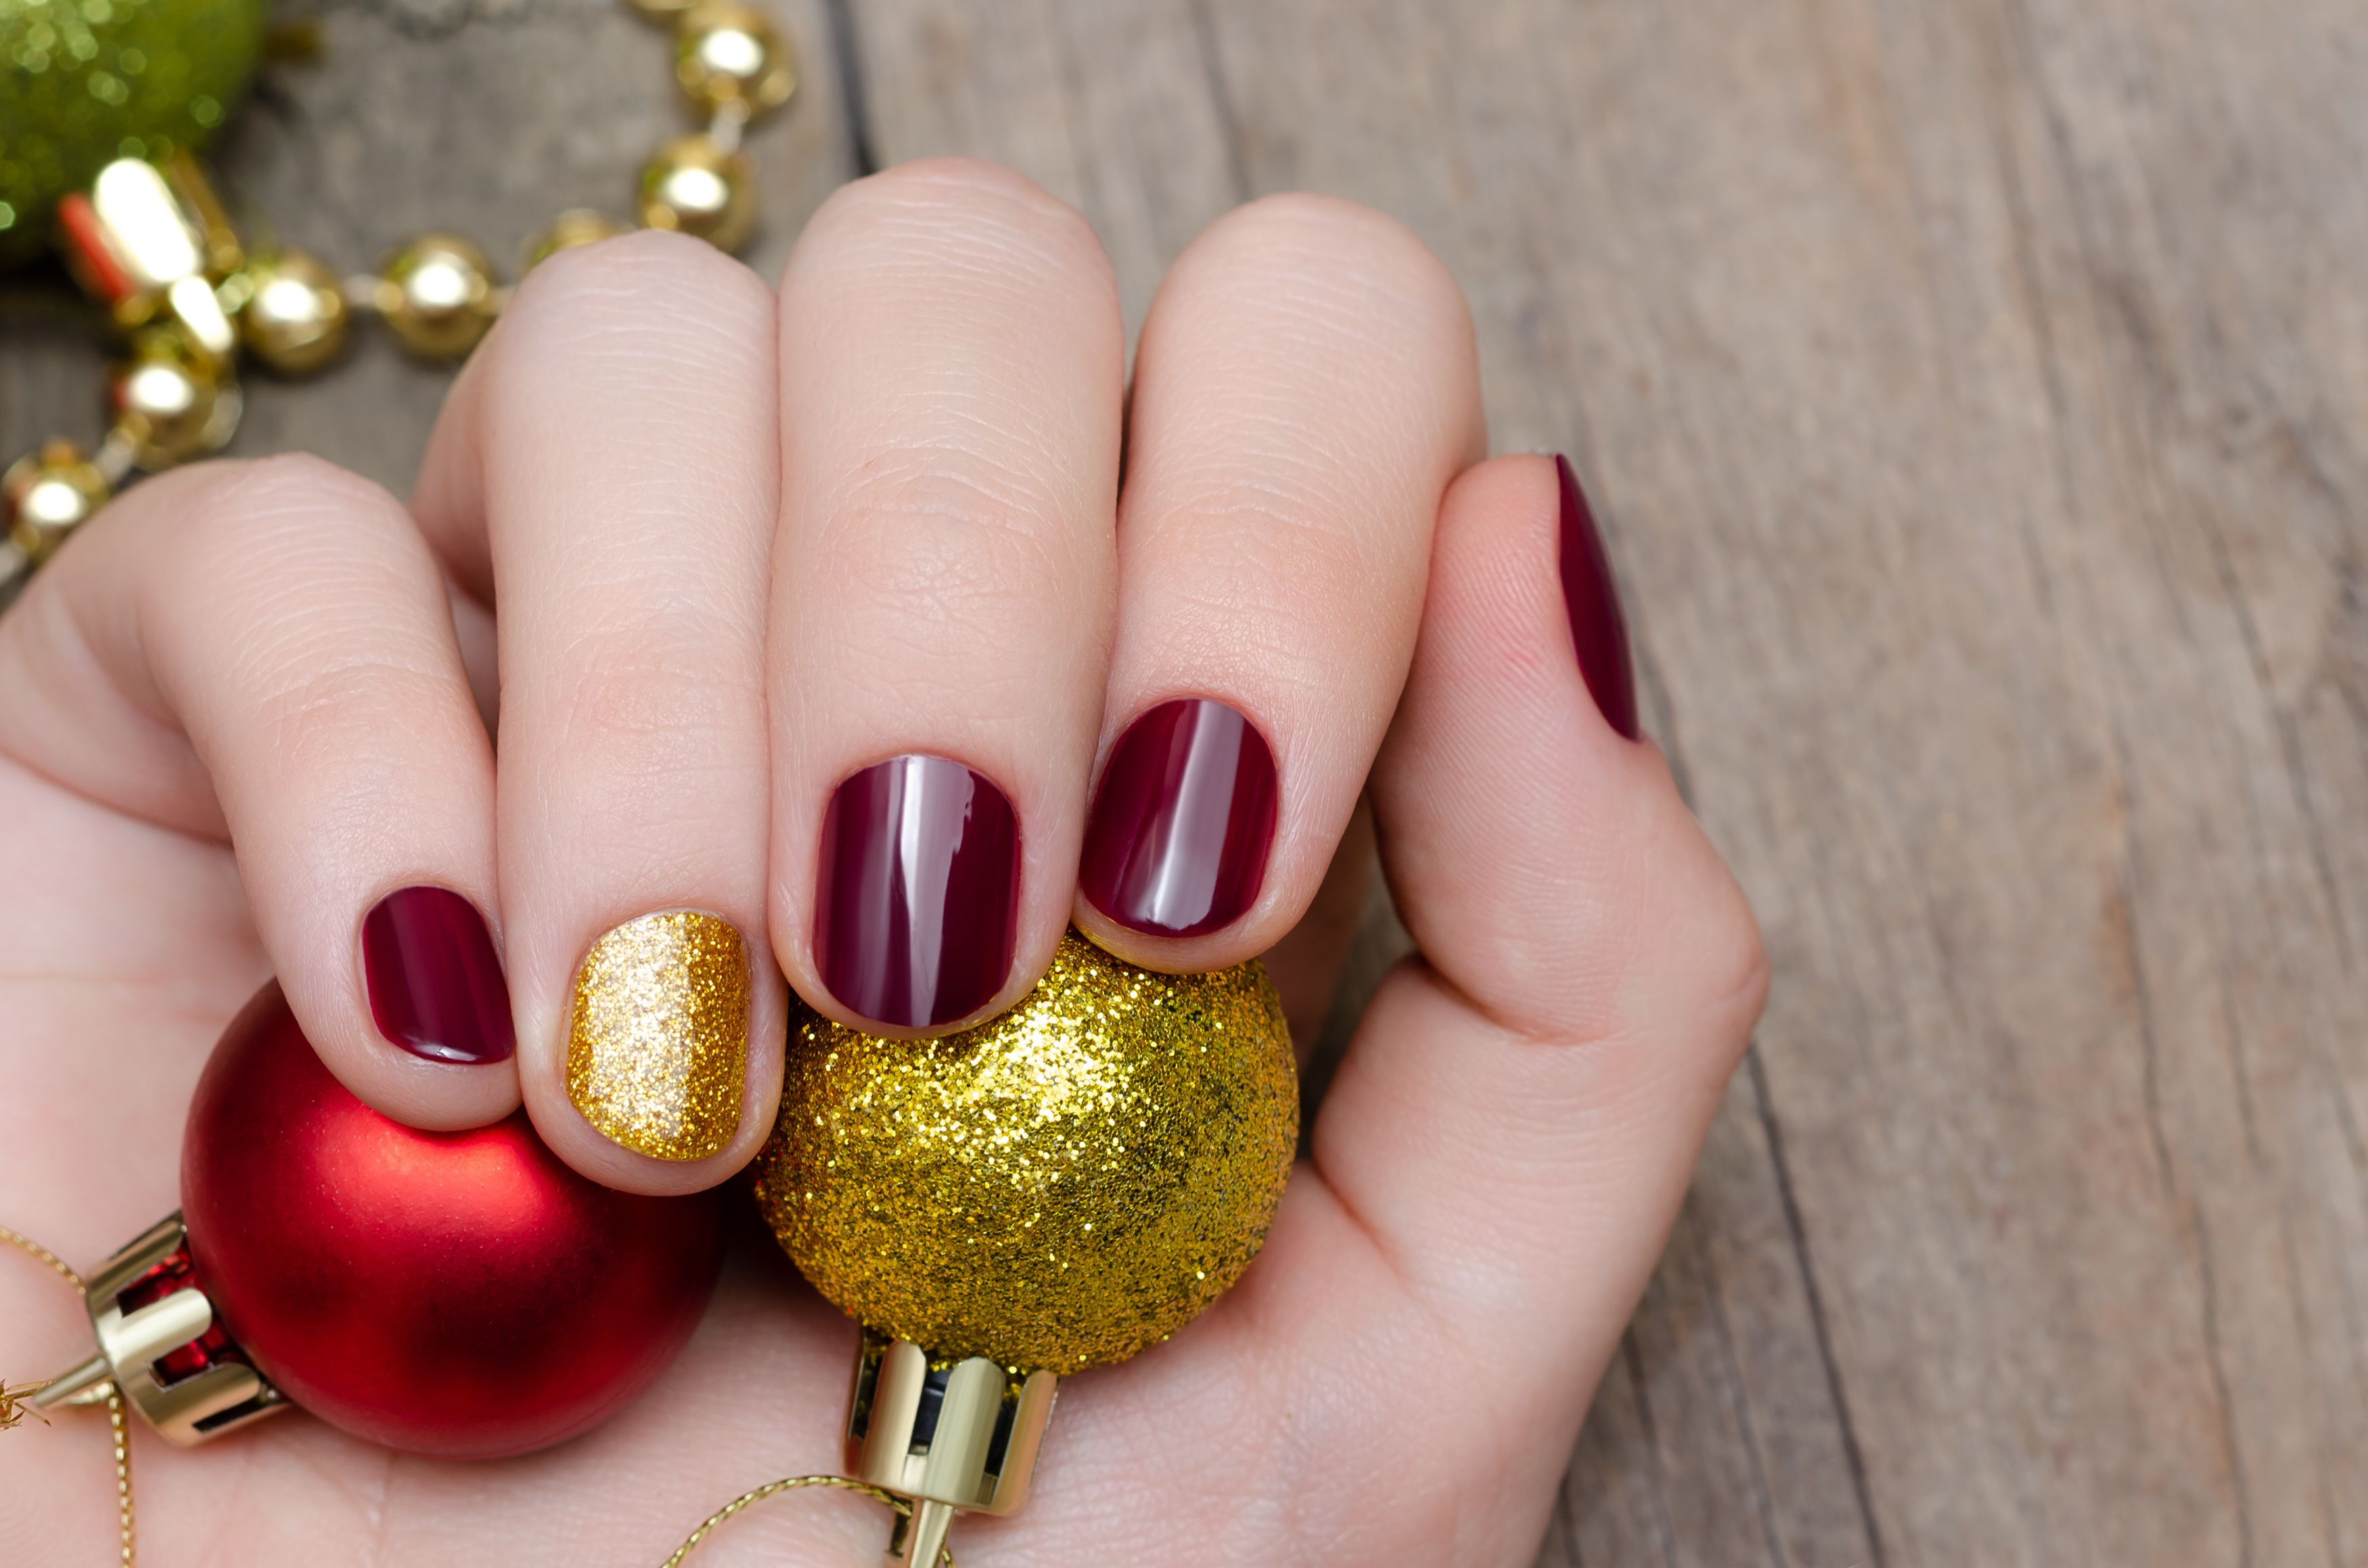 30 Christmas Nail Art Design Ideas 2020 Easy Holiday Manicures